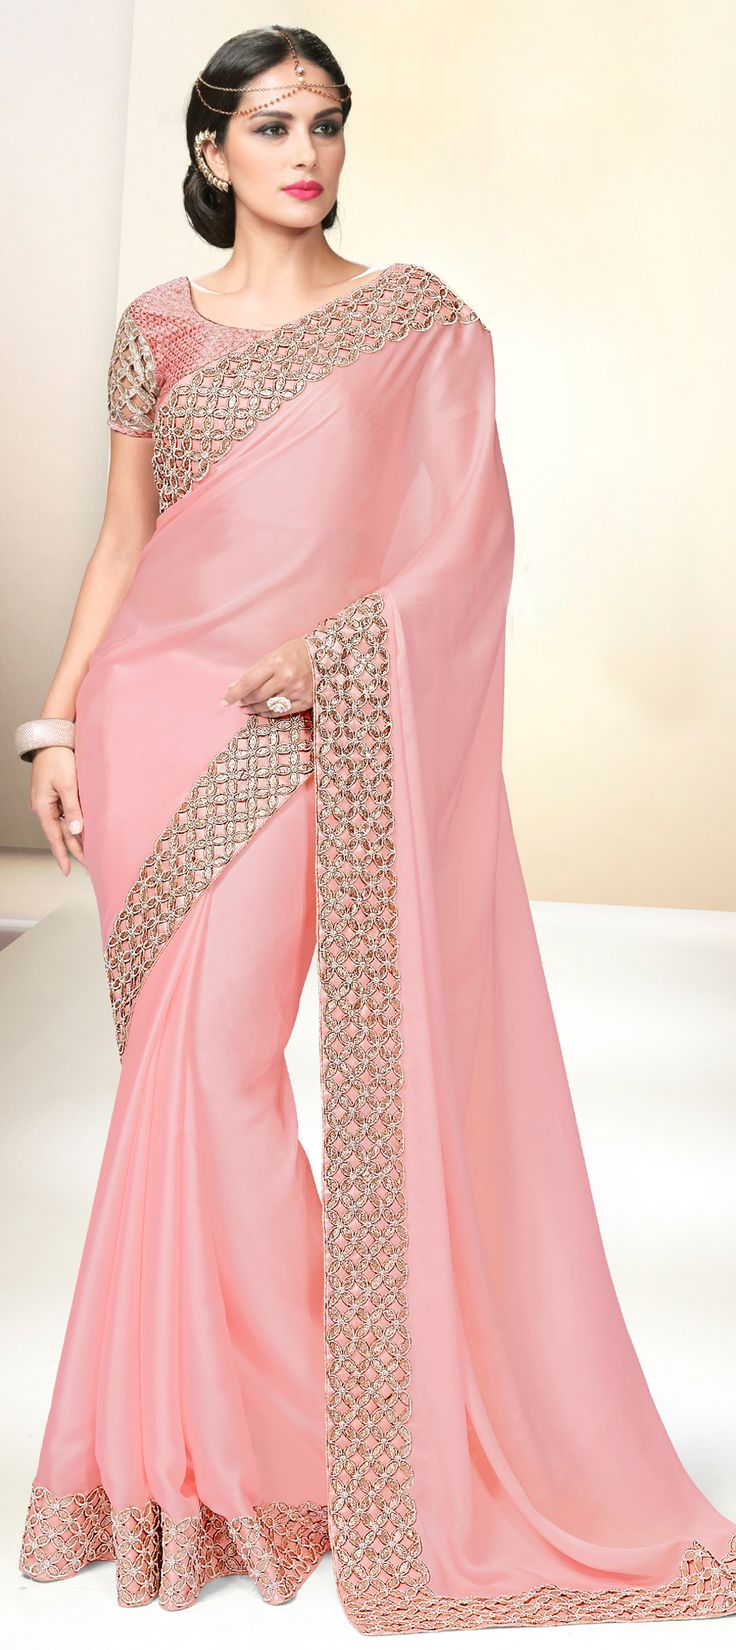 196749: Pink and Majenta color family Embroidered Sarees, Party Wear Sarees with matching unstitched blouse.